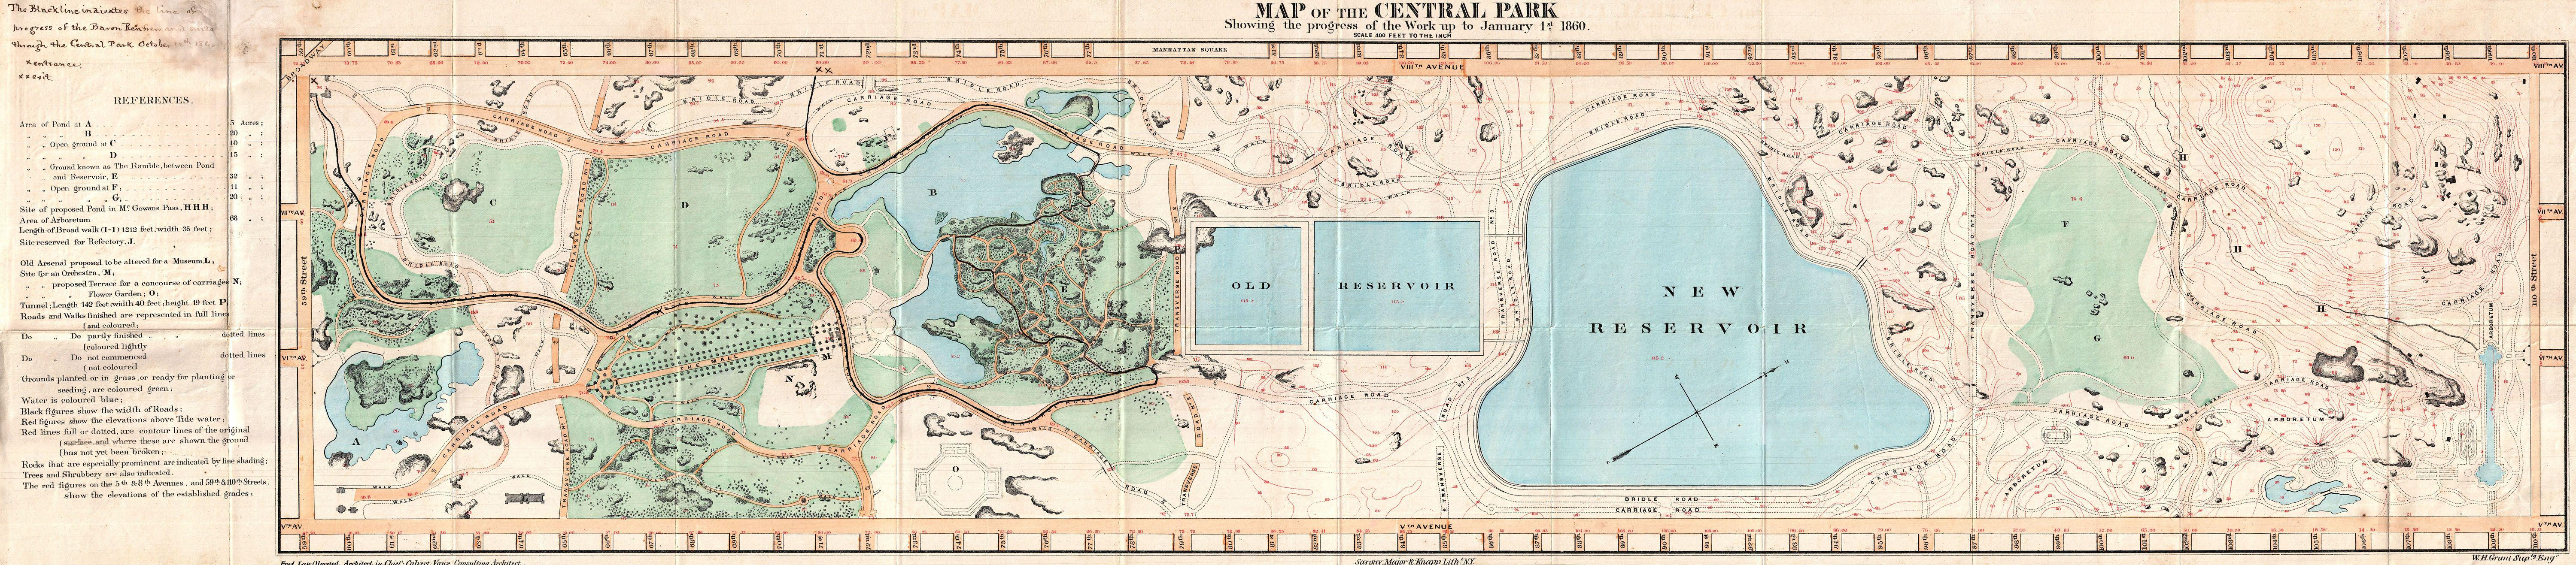 File 1860 Pocket Map of Central Park New York City Geographicus CentralP